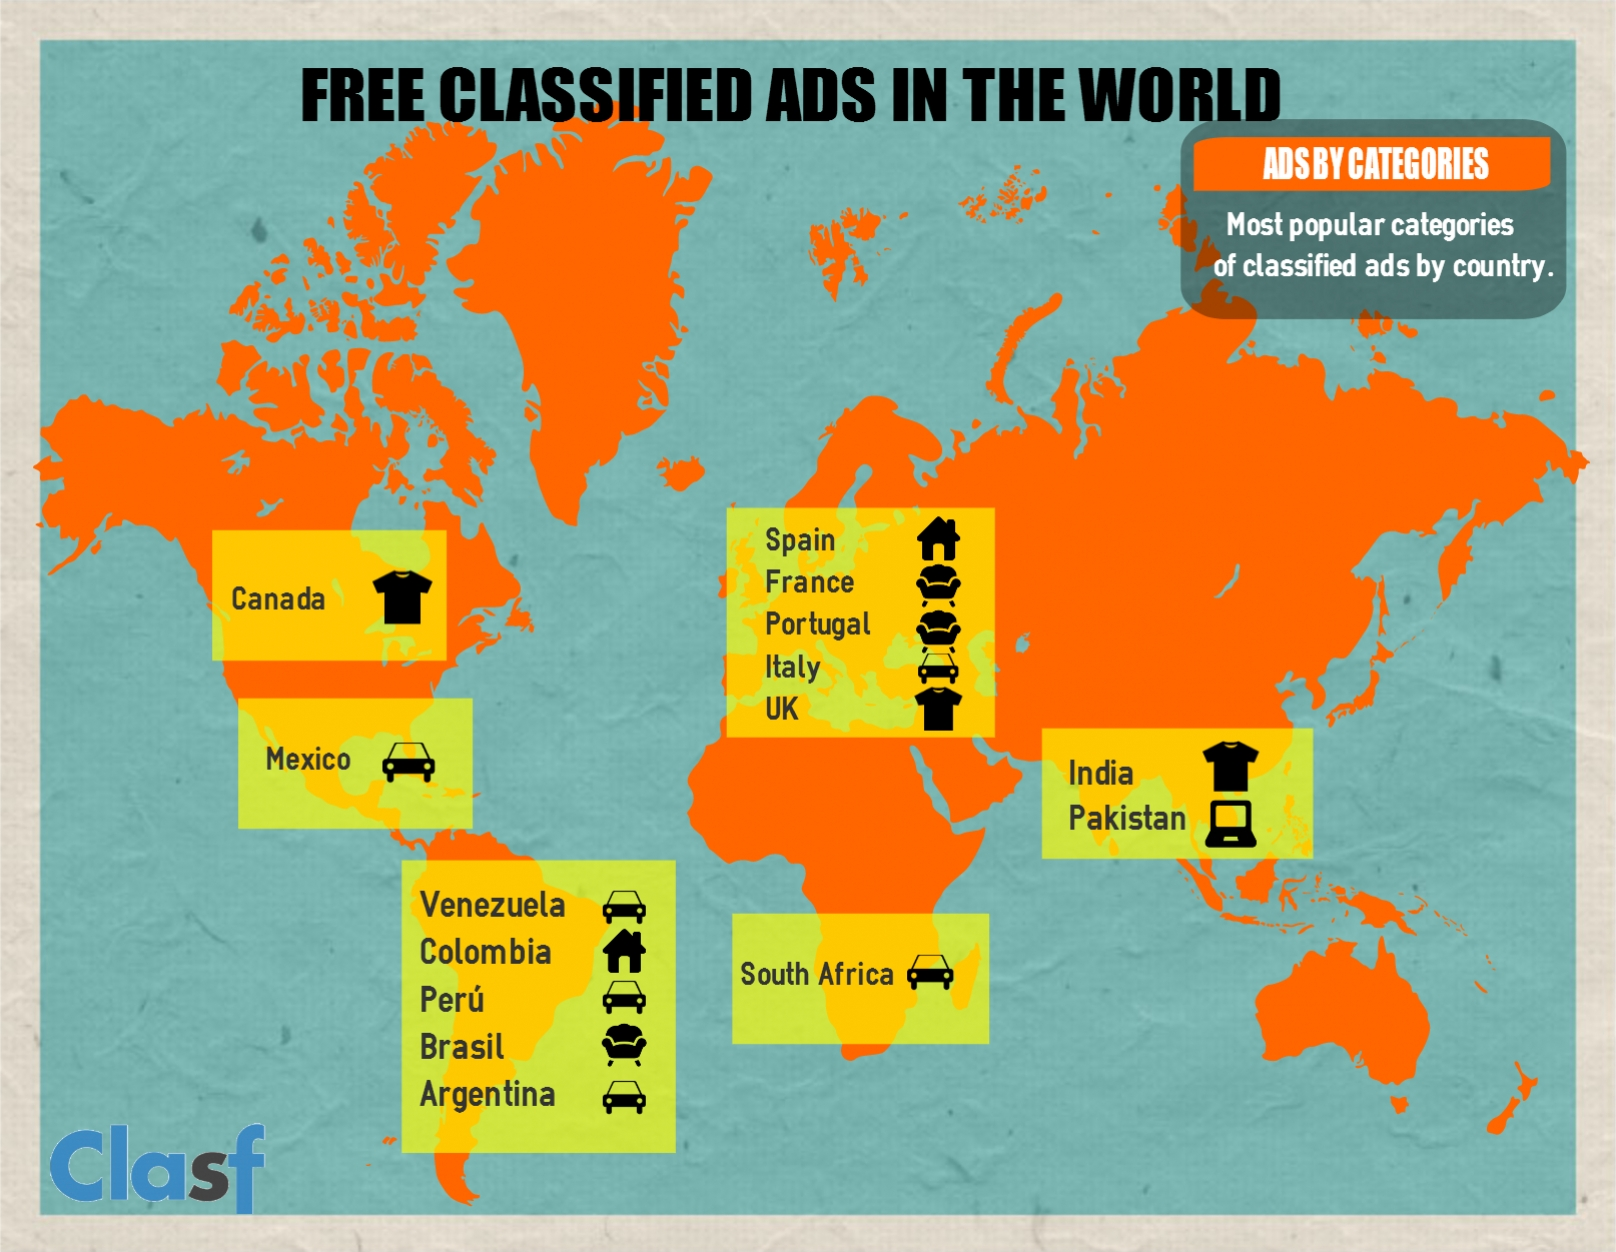 ads in the world